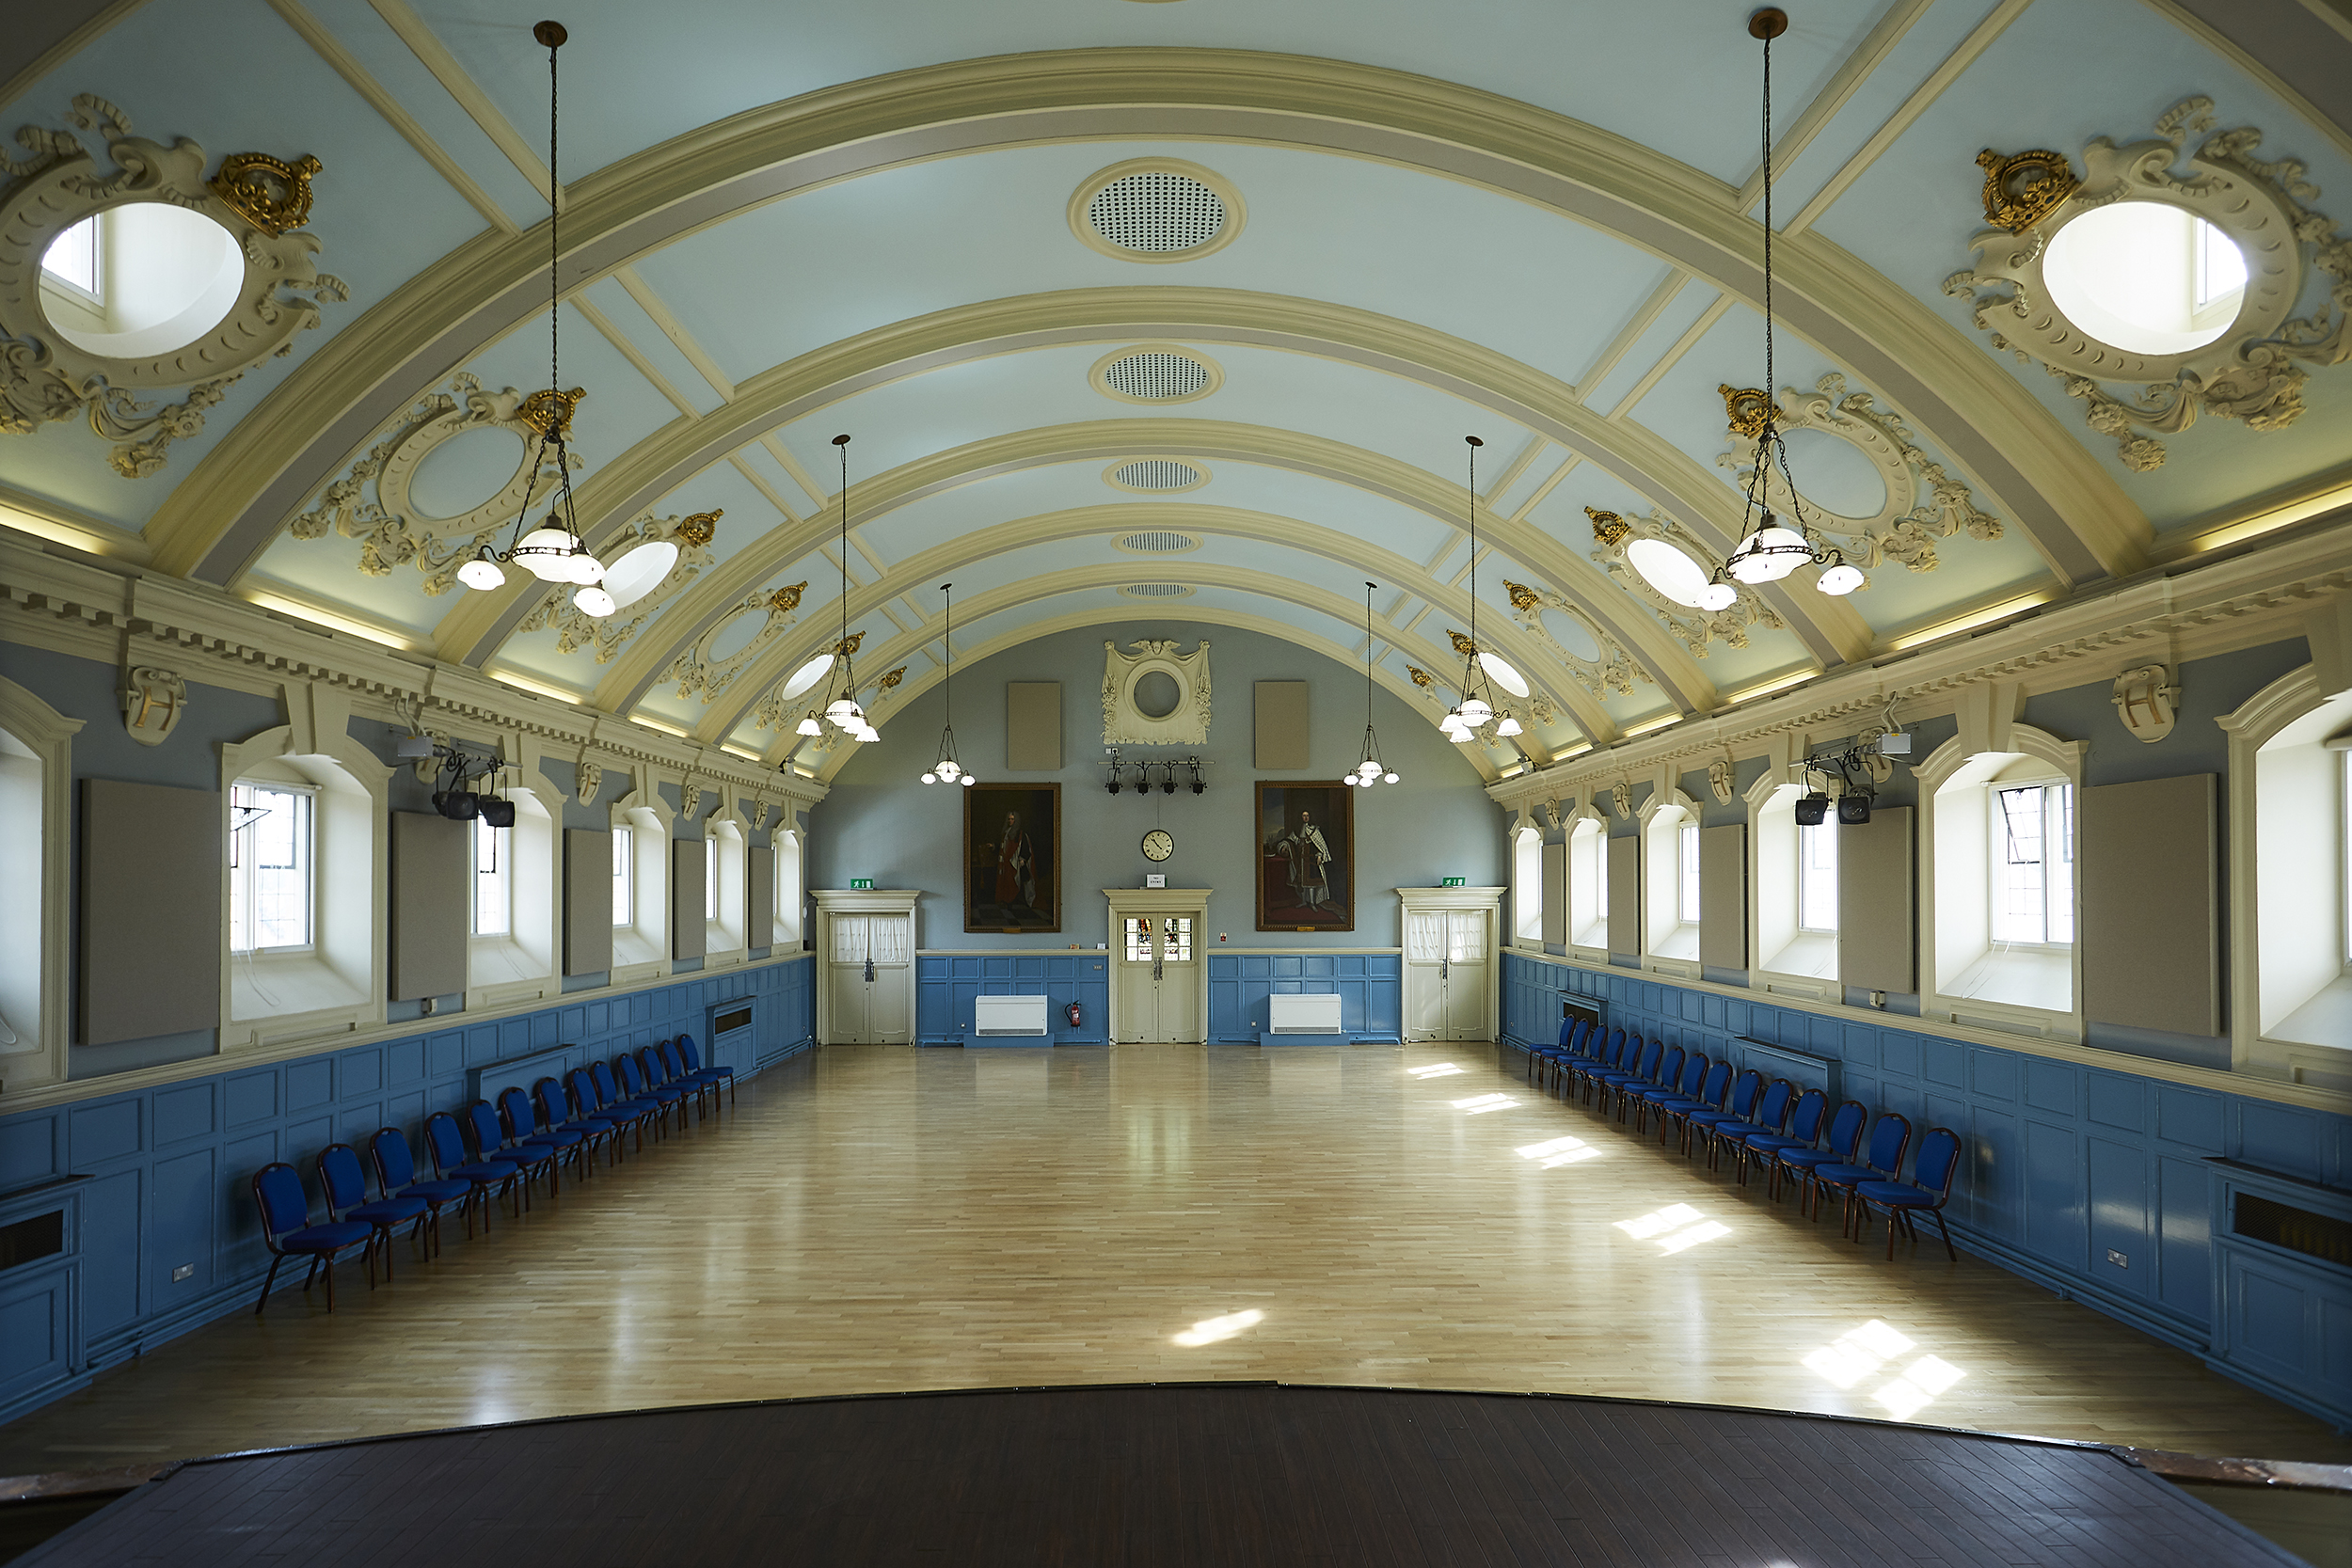 Henley Town Council - large interior of Henley town hall